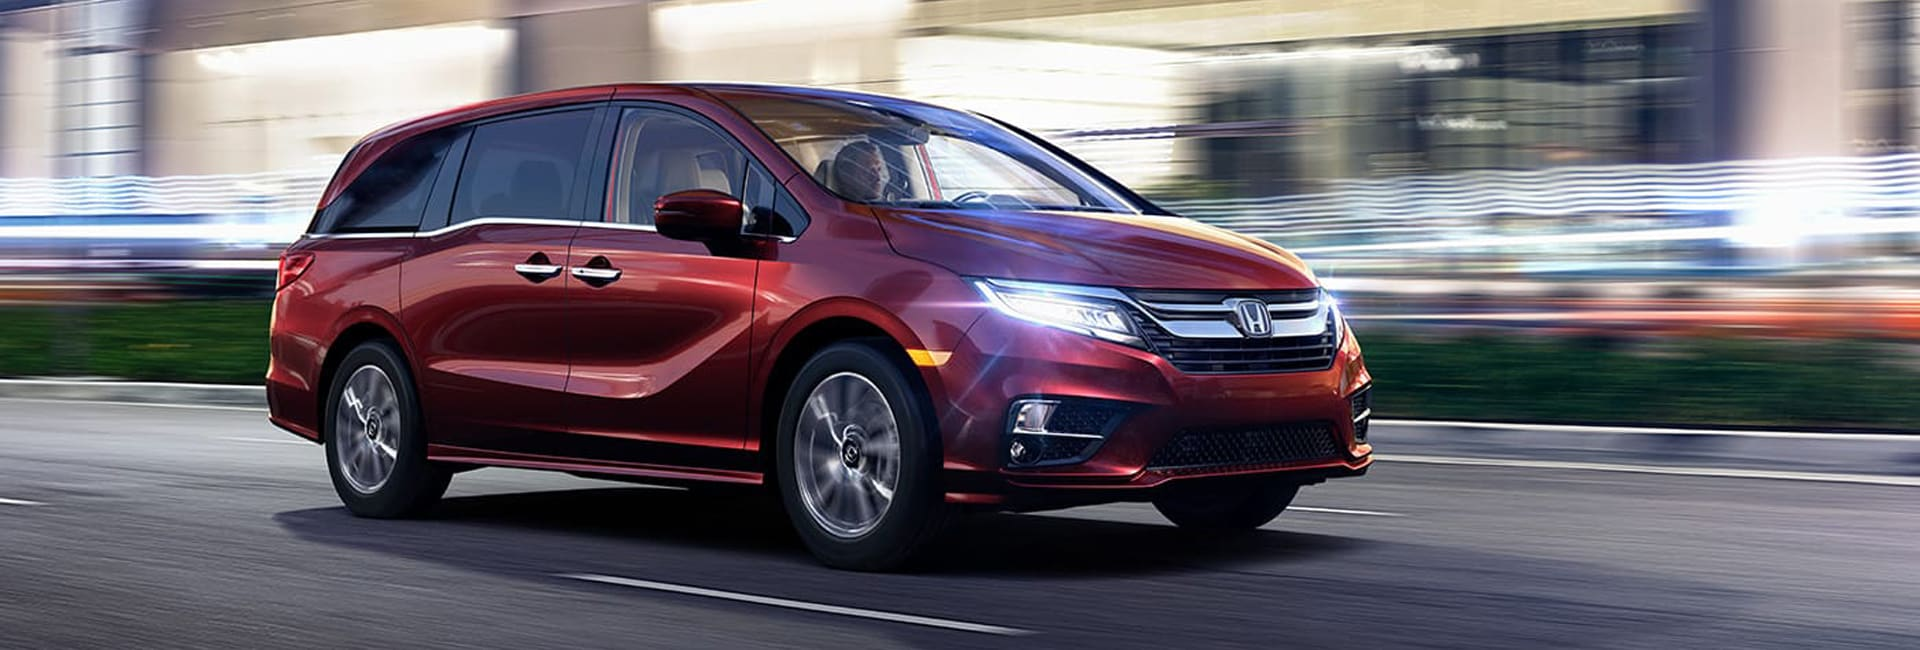 New Honda Odyssey Red Exterior Off Road